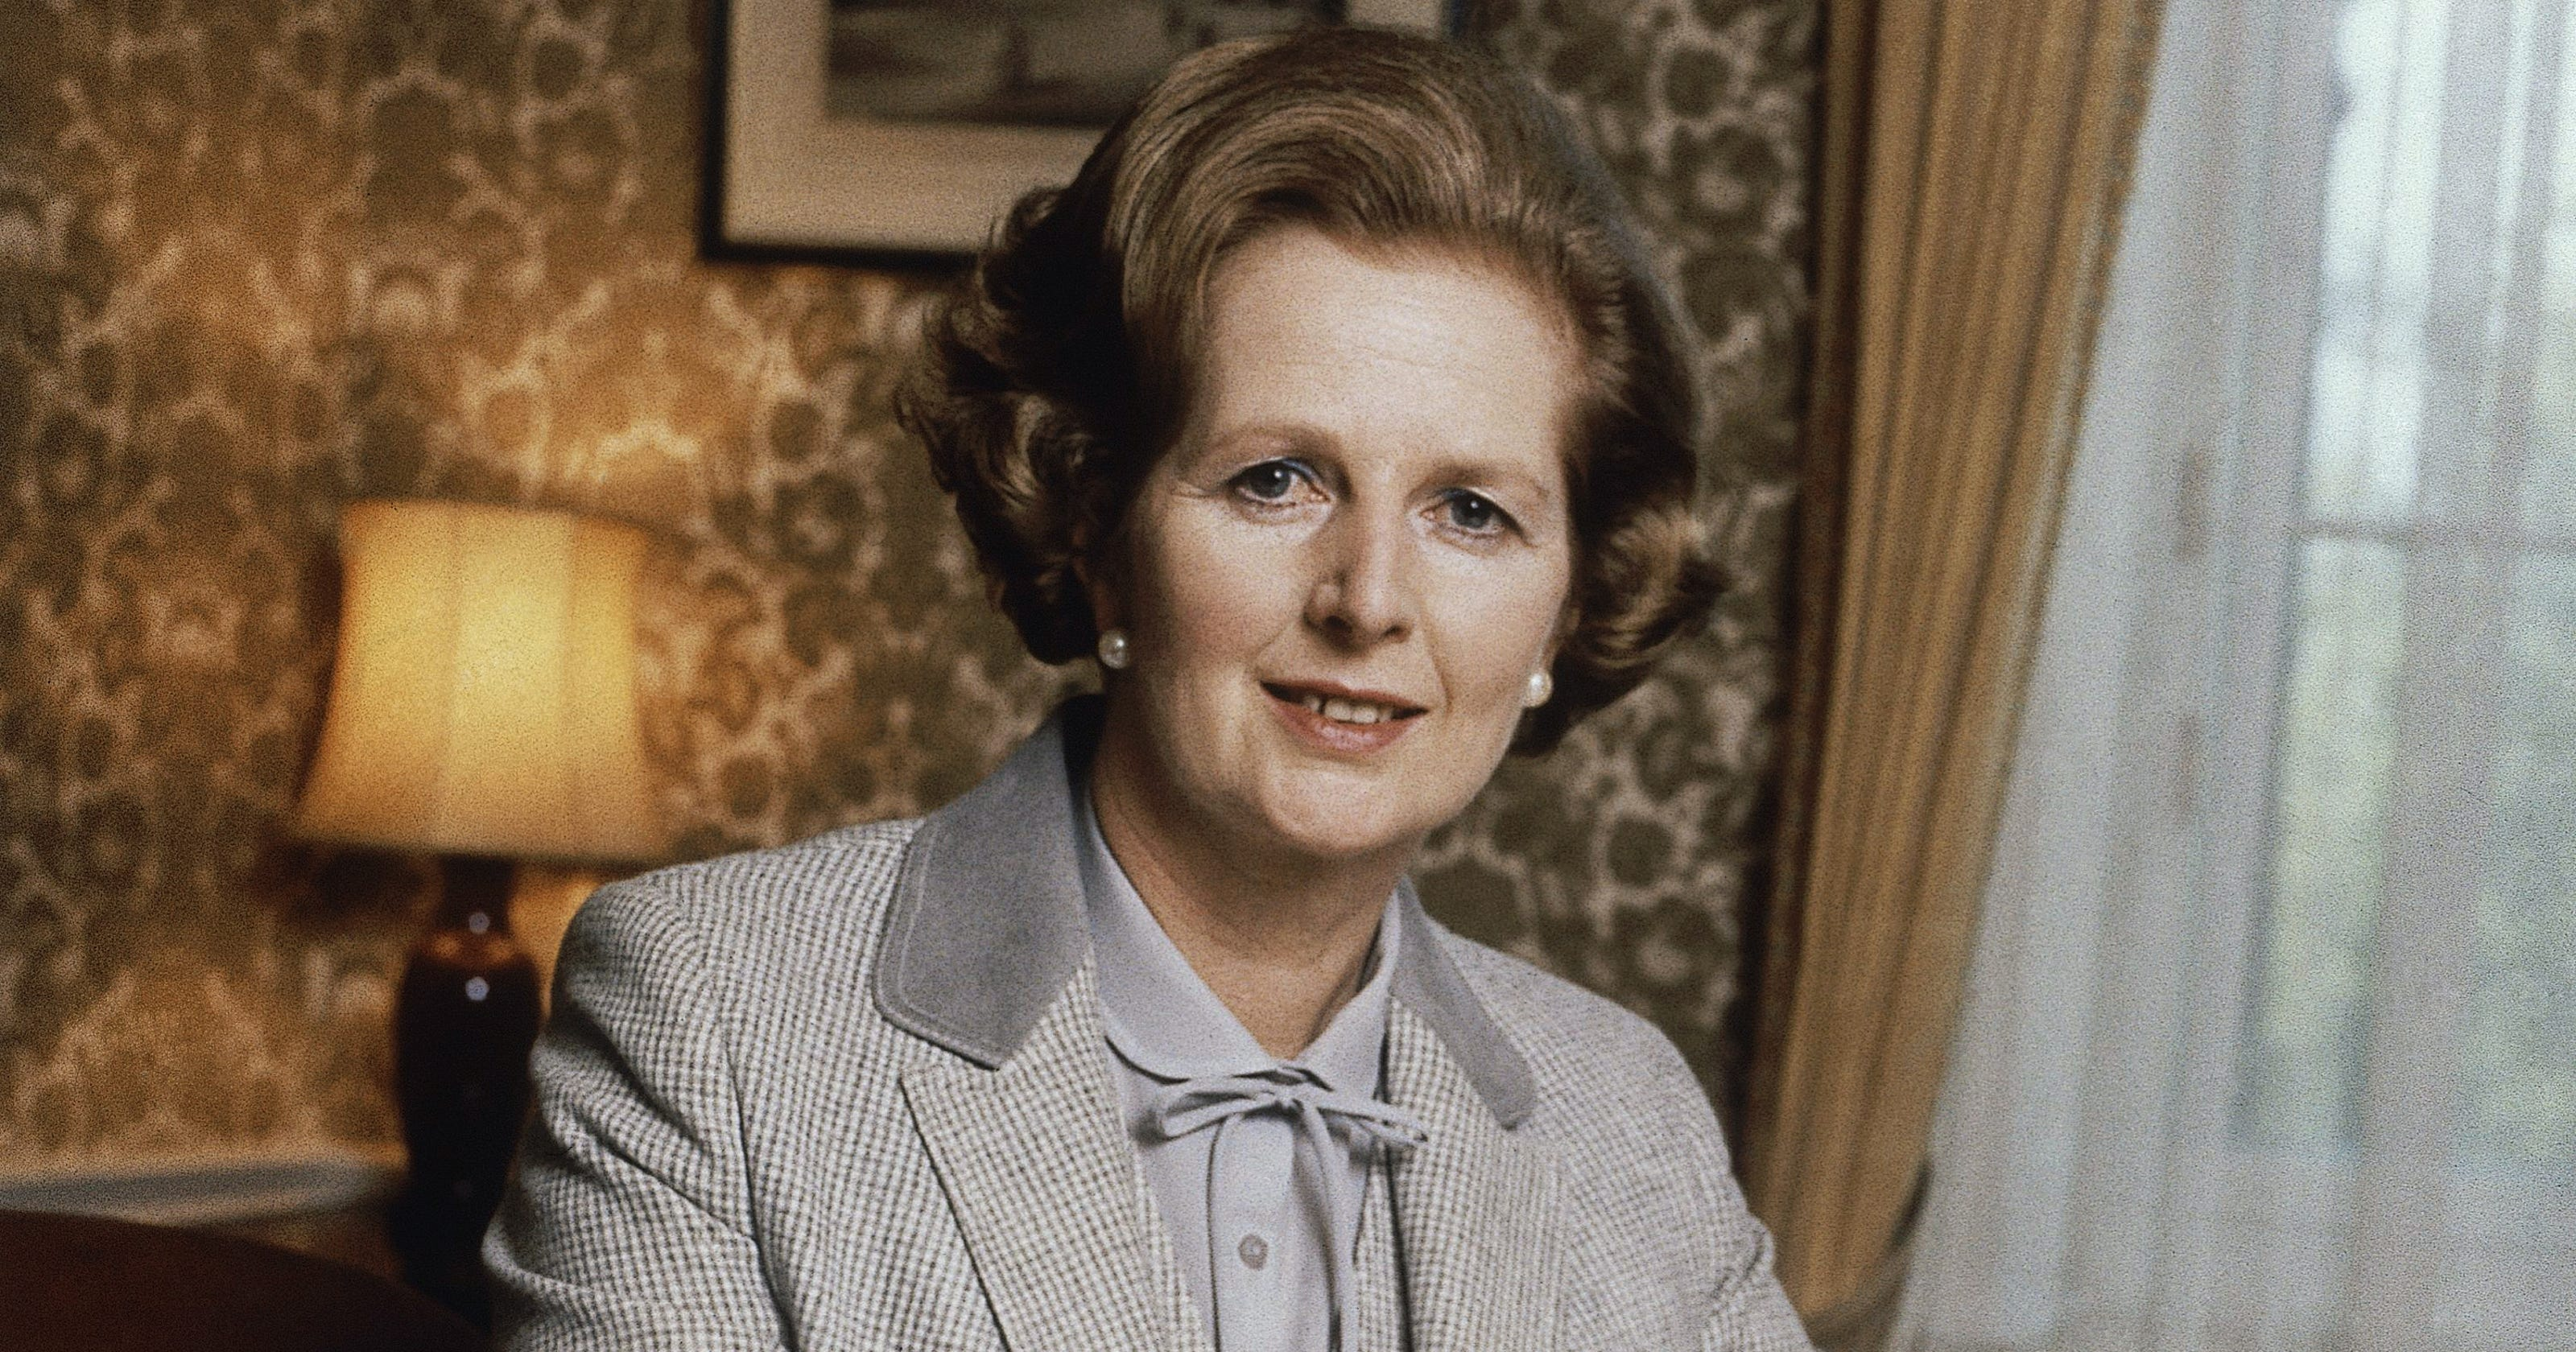 a biography of graet britains prime minister margaret thatcher Margaret thatcher biography prime minister of great britain   and she was named prime minister on 4 may 1979 margaret thatcher shored up a conservative-led.